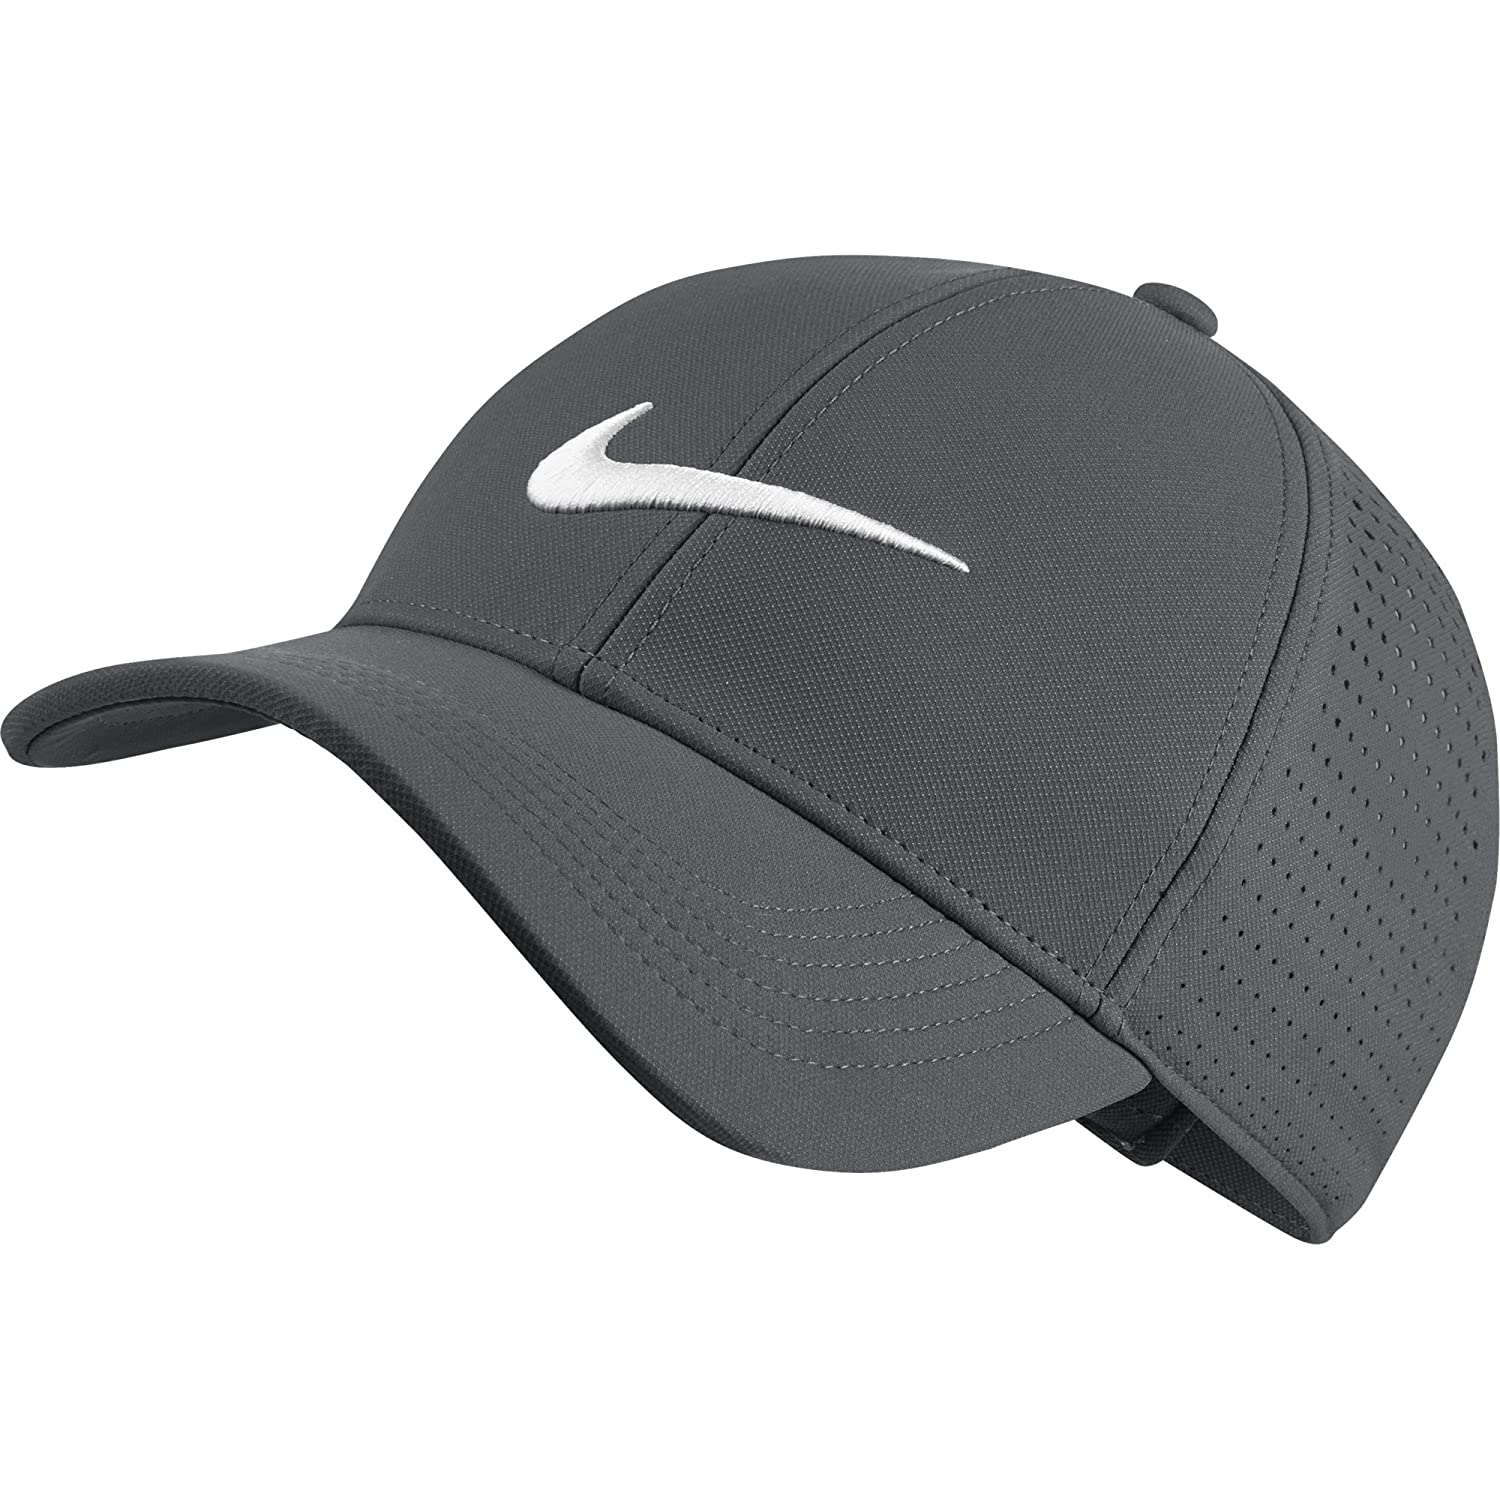 6b543a04 Amazon.com: NIKE Unisex AeroBill Legacy 91 Perforated Golf Cap, Black /Anthracite/White, One Size: Clothing